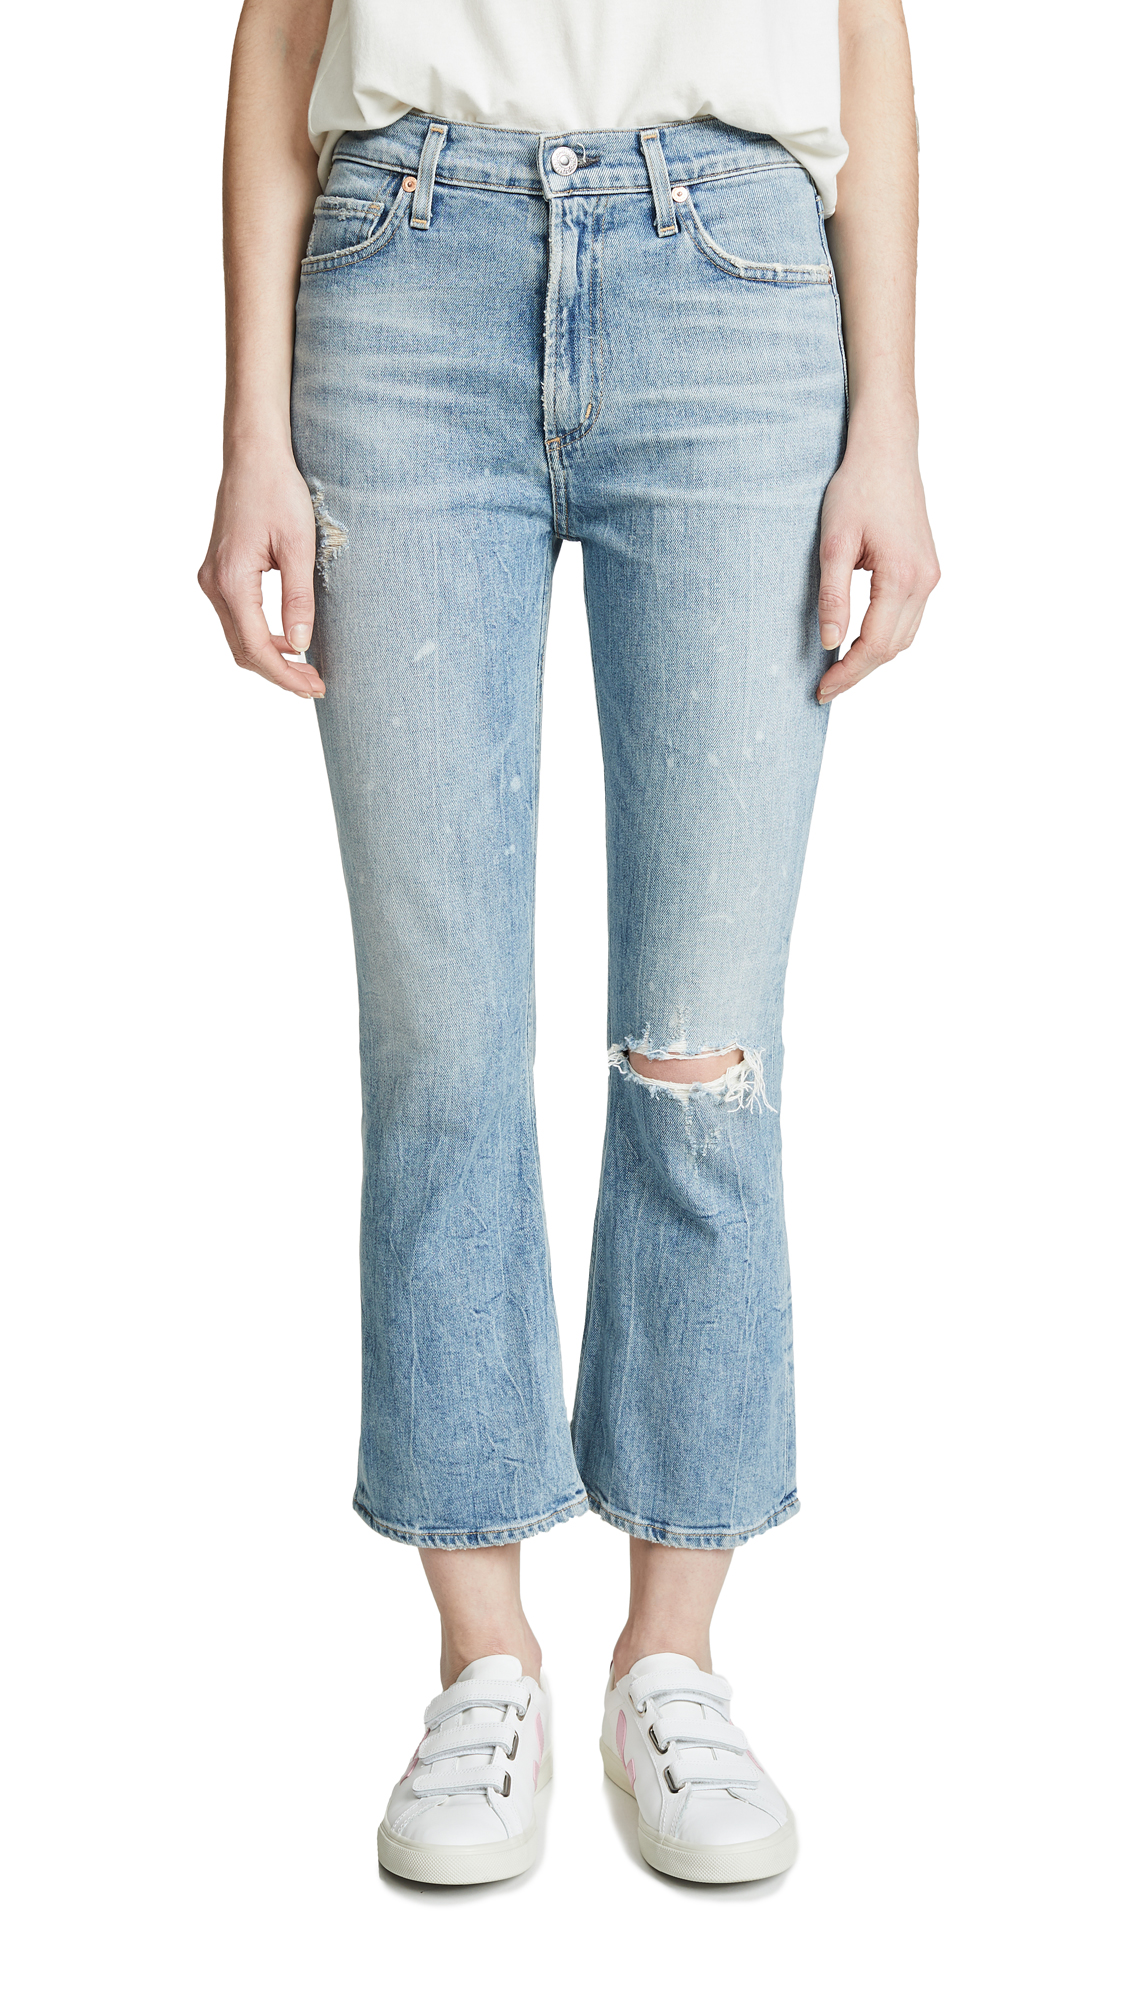 Citizens of Humanity Demy Cropped Flare Jeans - Stargazer